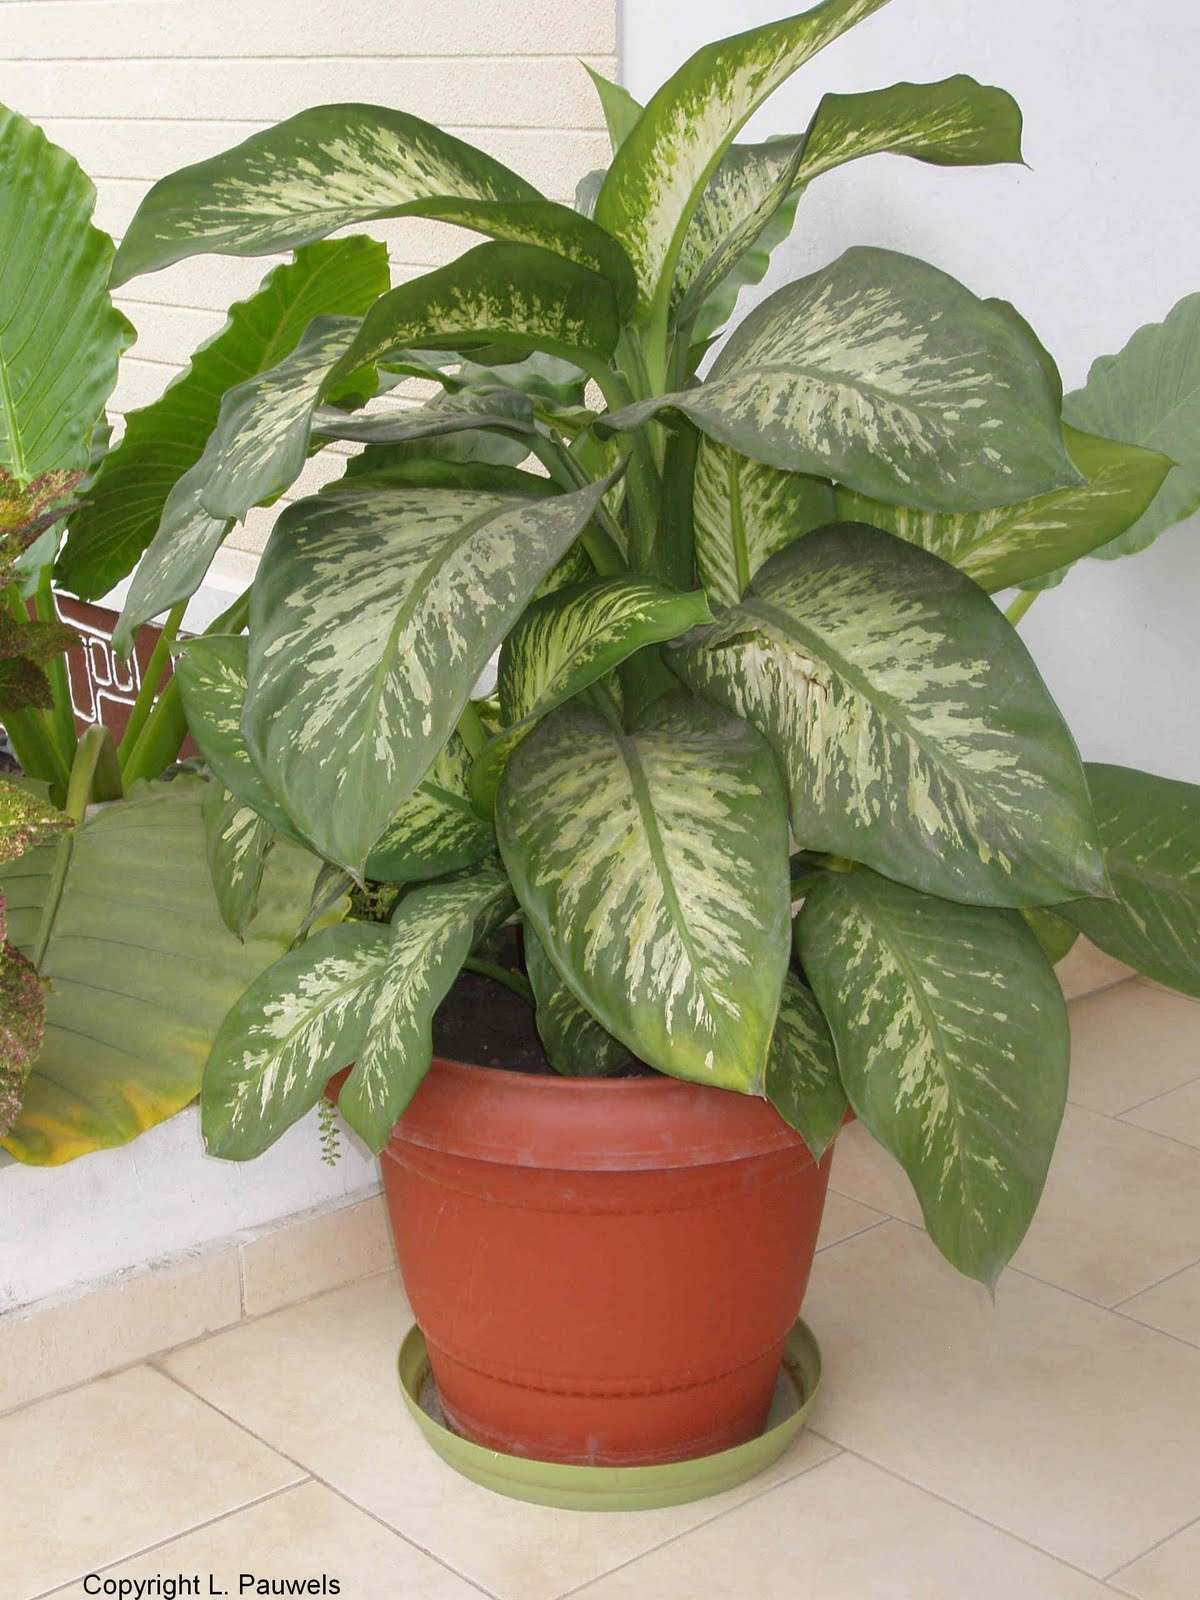 Attractive house plants 2015 large house plants - Tall house plants ...